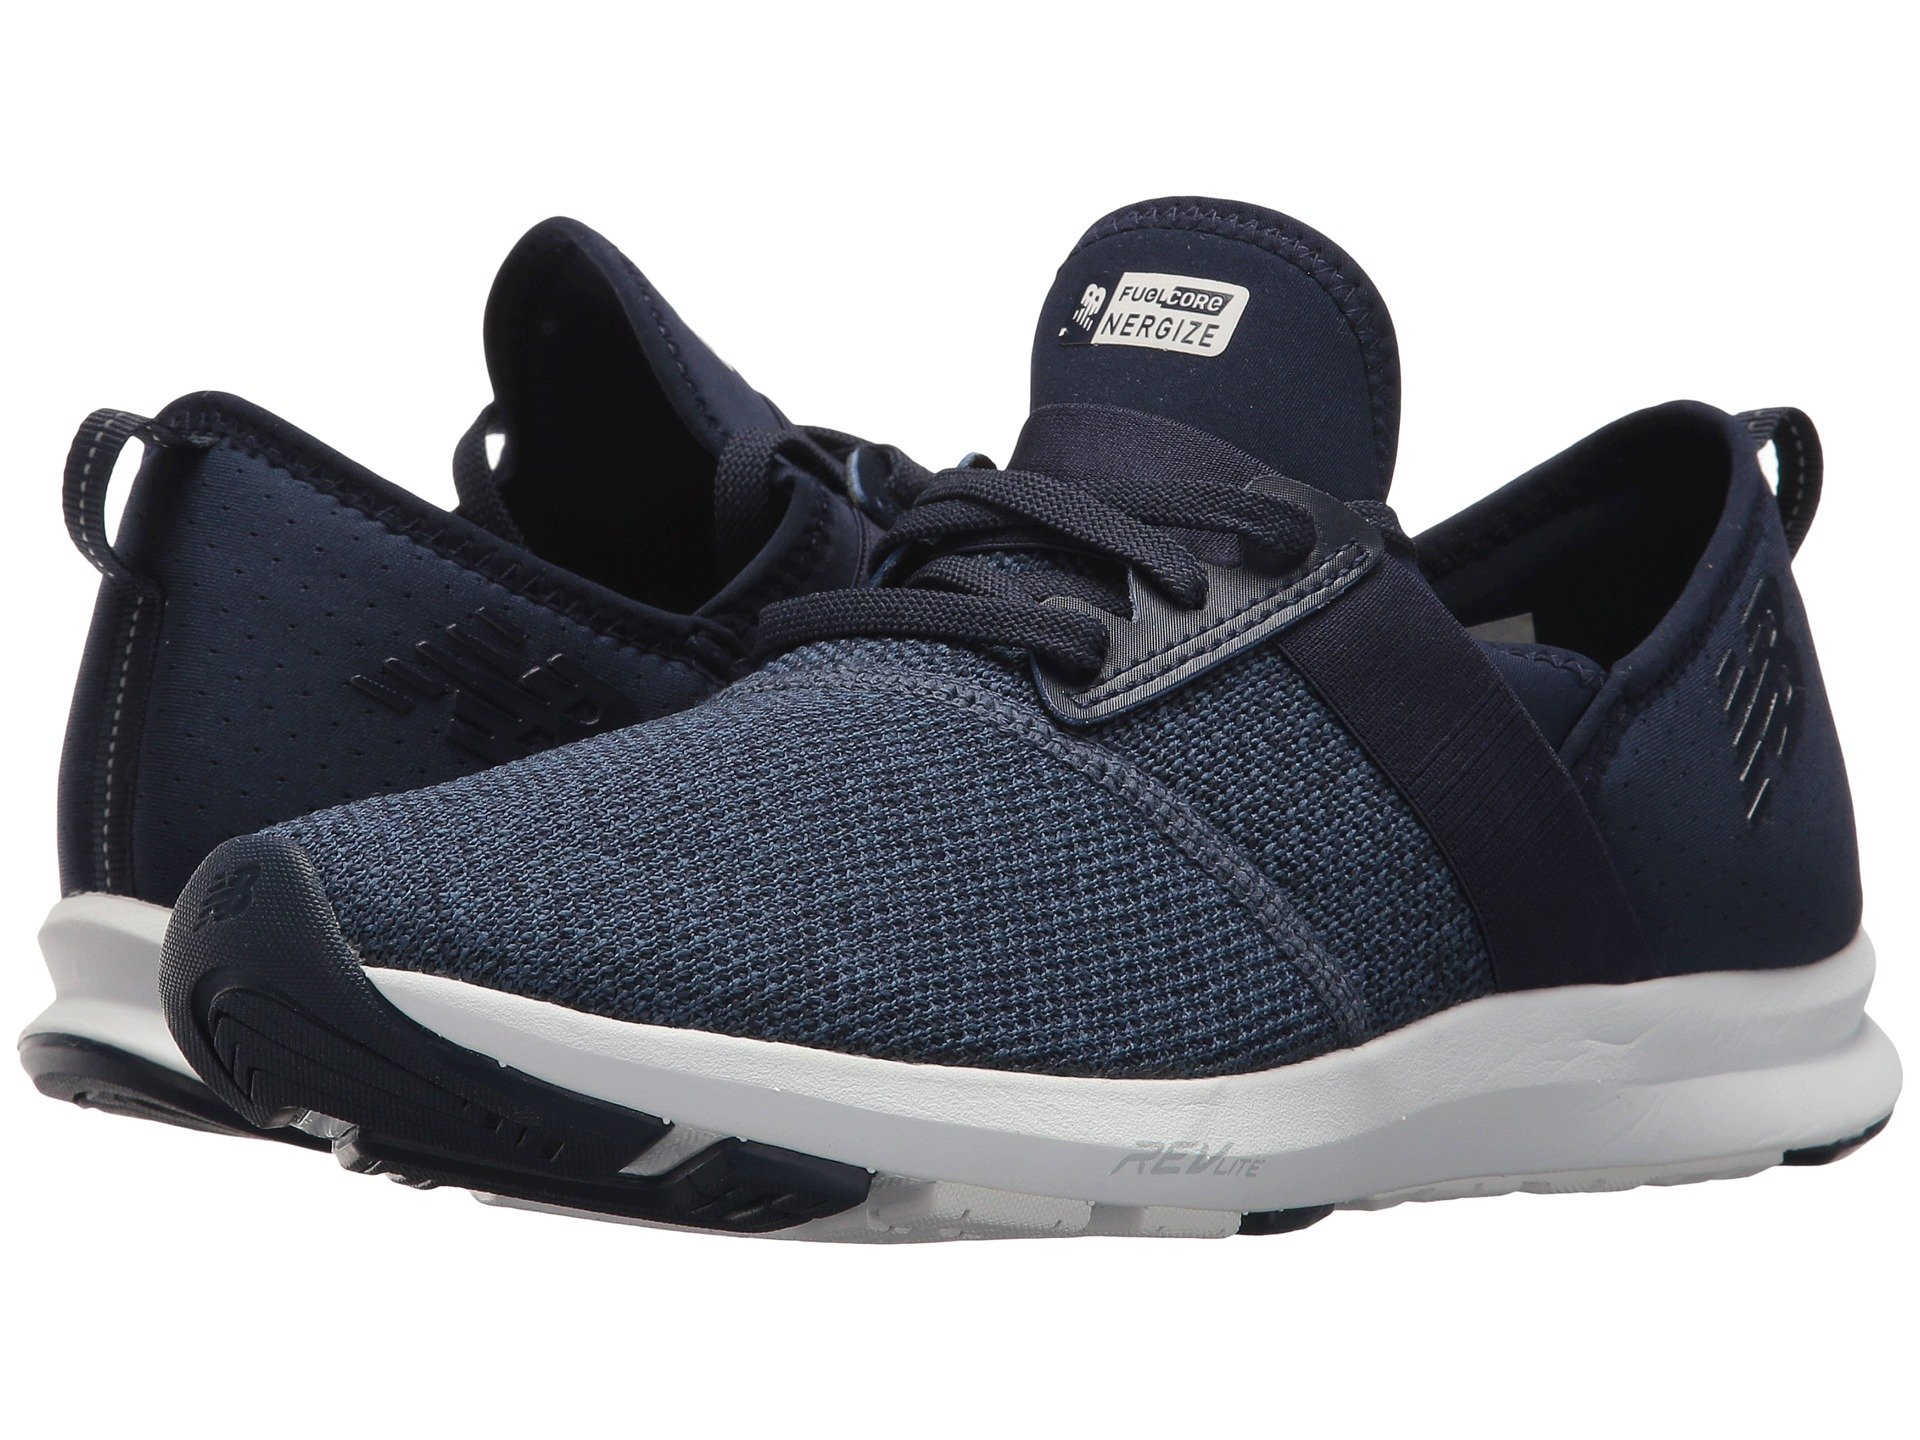 New Balance FuelCore NERGIZE at Zappos.com